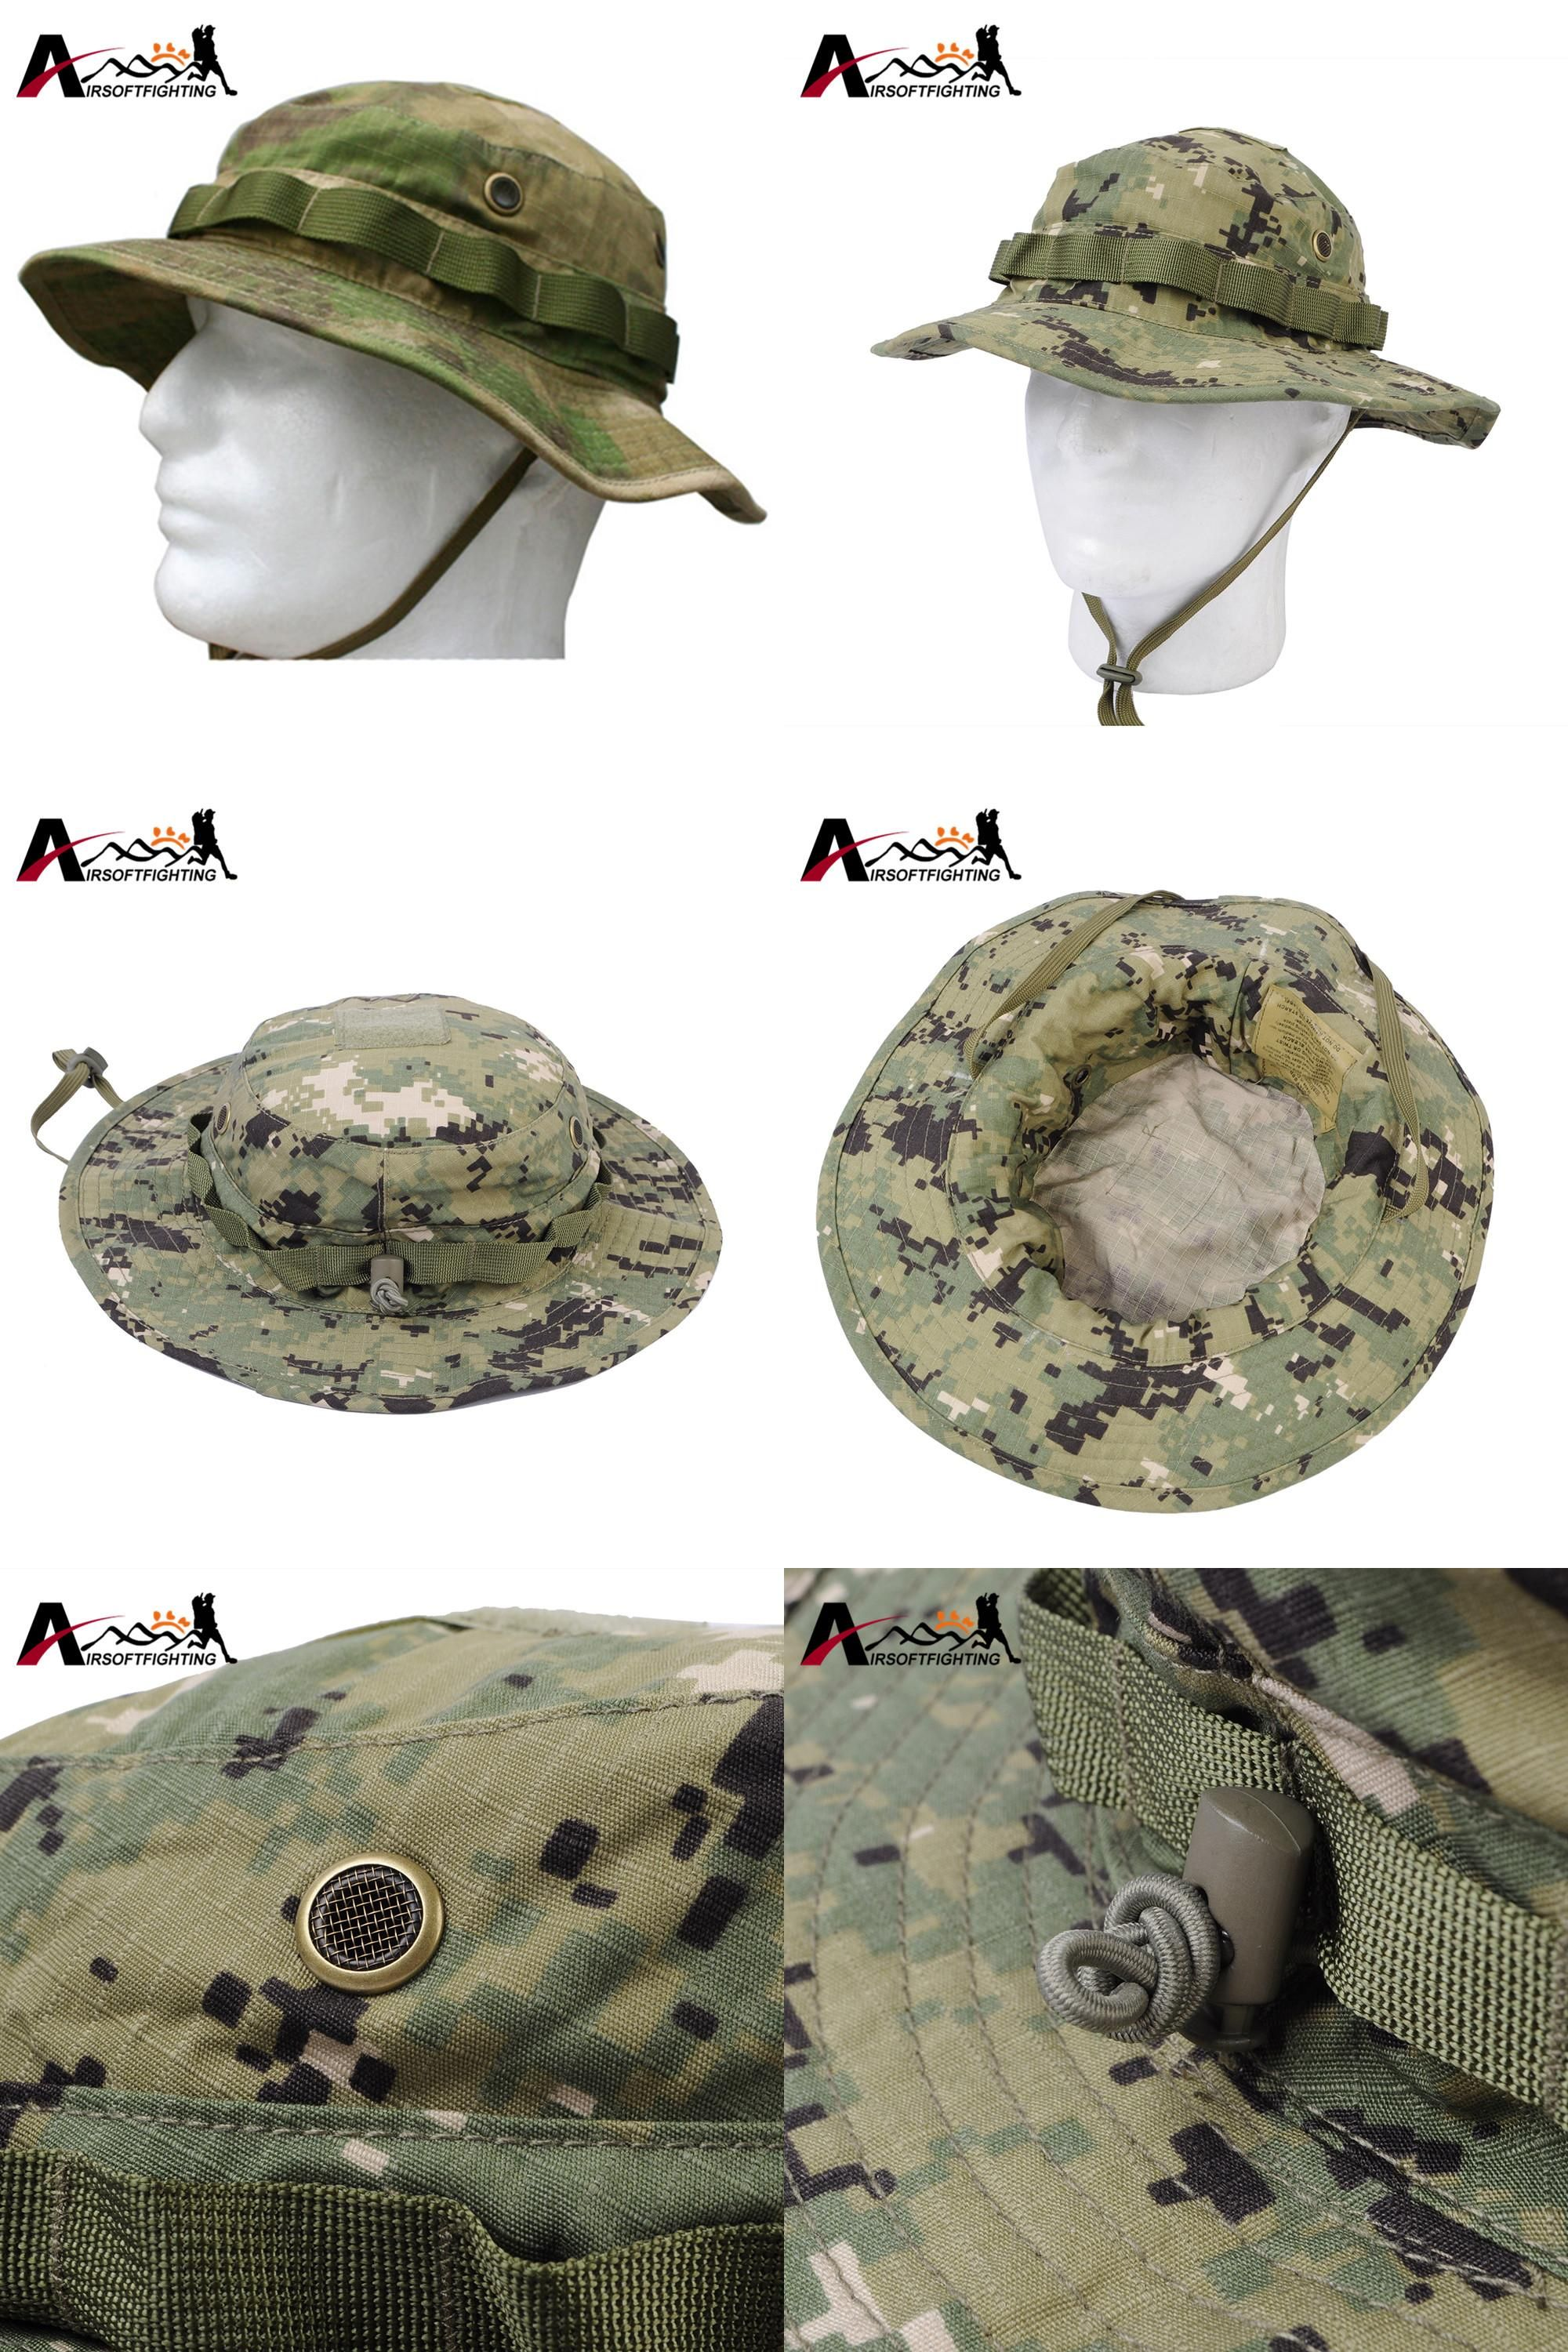 030f12253dd  Visit to Buy  Emerson Tactical Anti-scrape Camouflage Bucket Hat Battle  Rip Boonie Hats Outdoor Hiking Fishing Hunting Cap Sports Sunhats   Advertisement